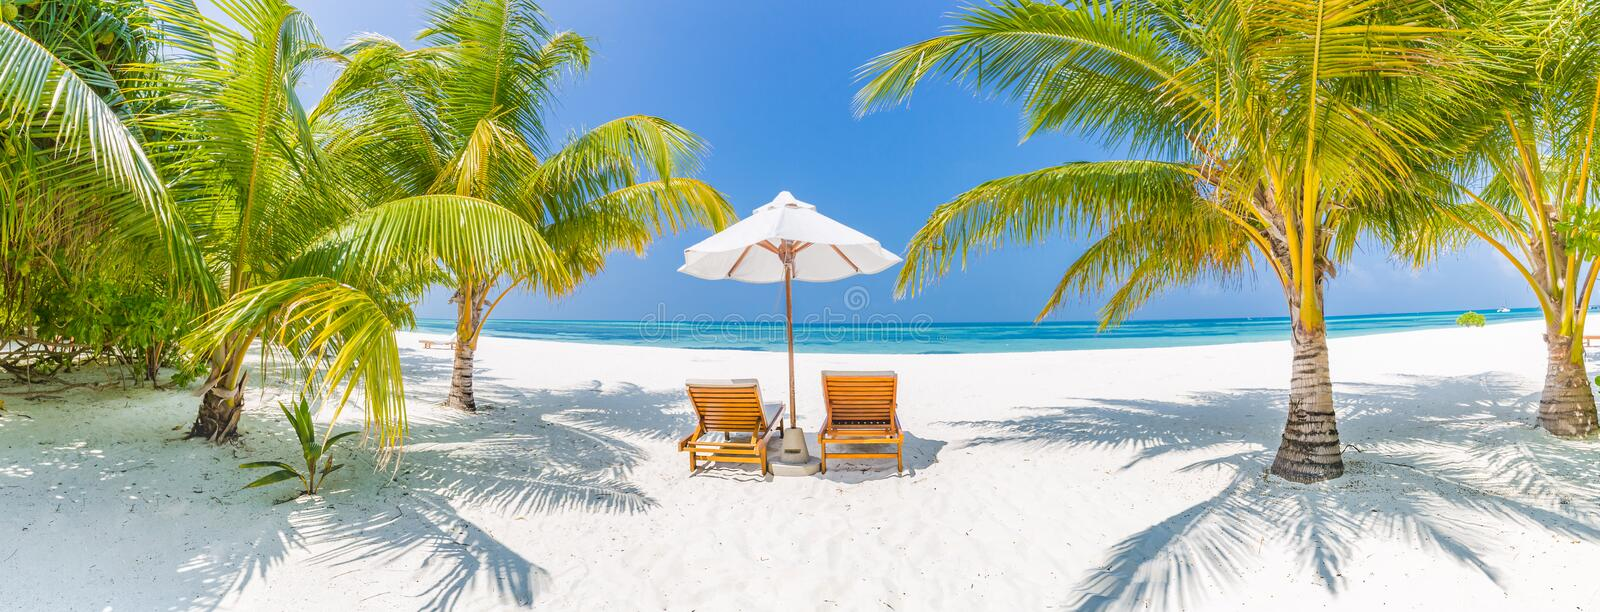 Summer travel destination background panorama. Tropical beach scene royalty free stock photography